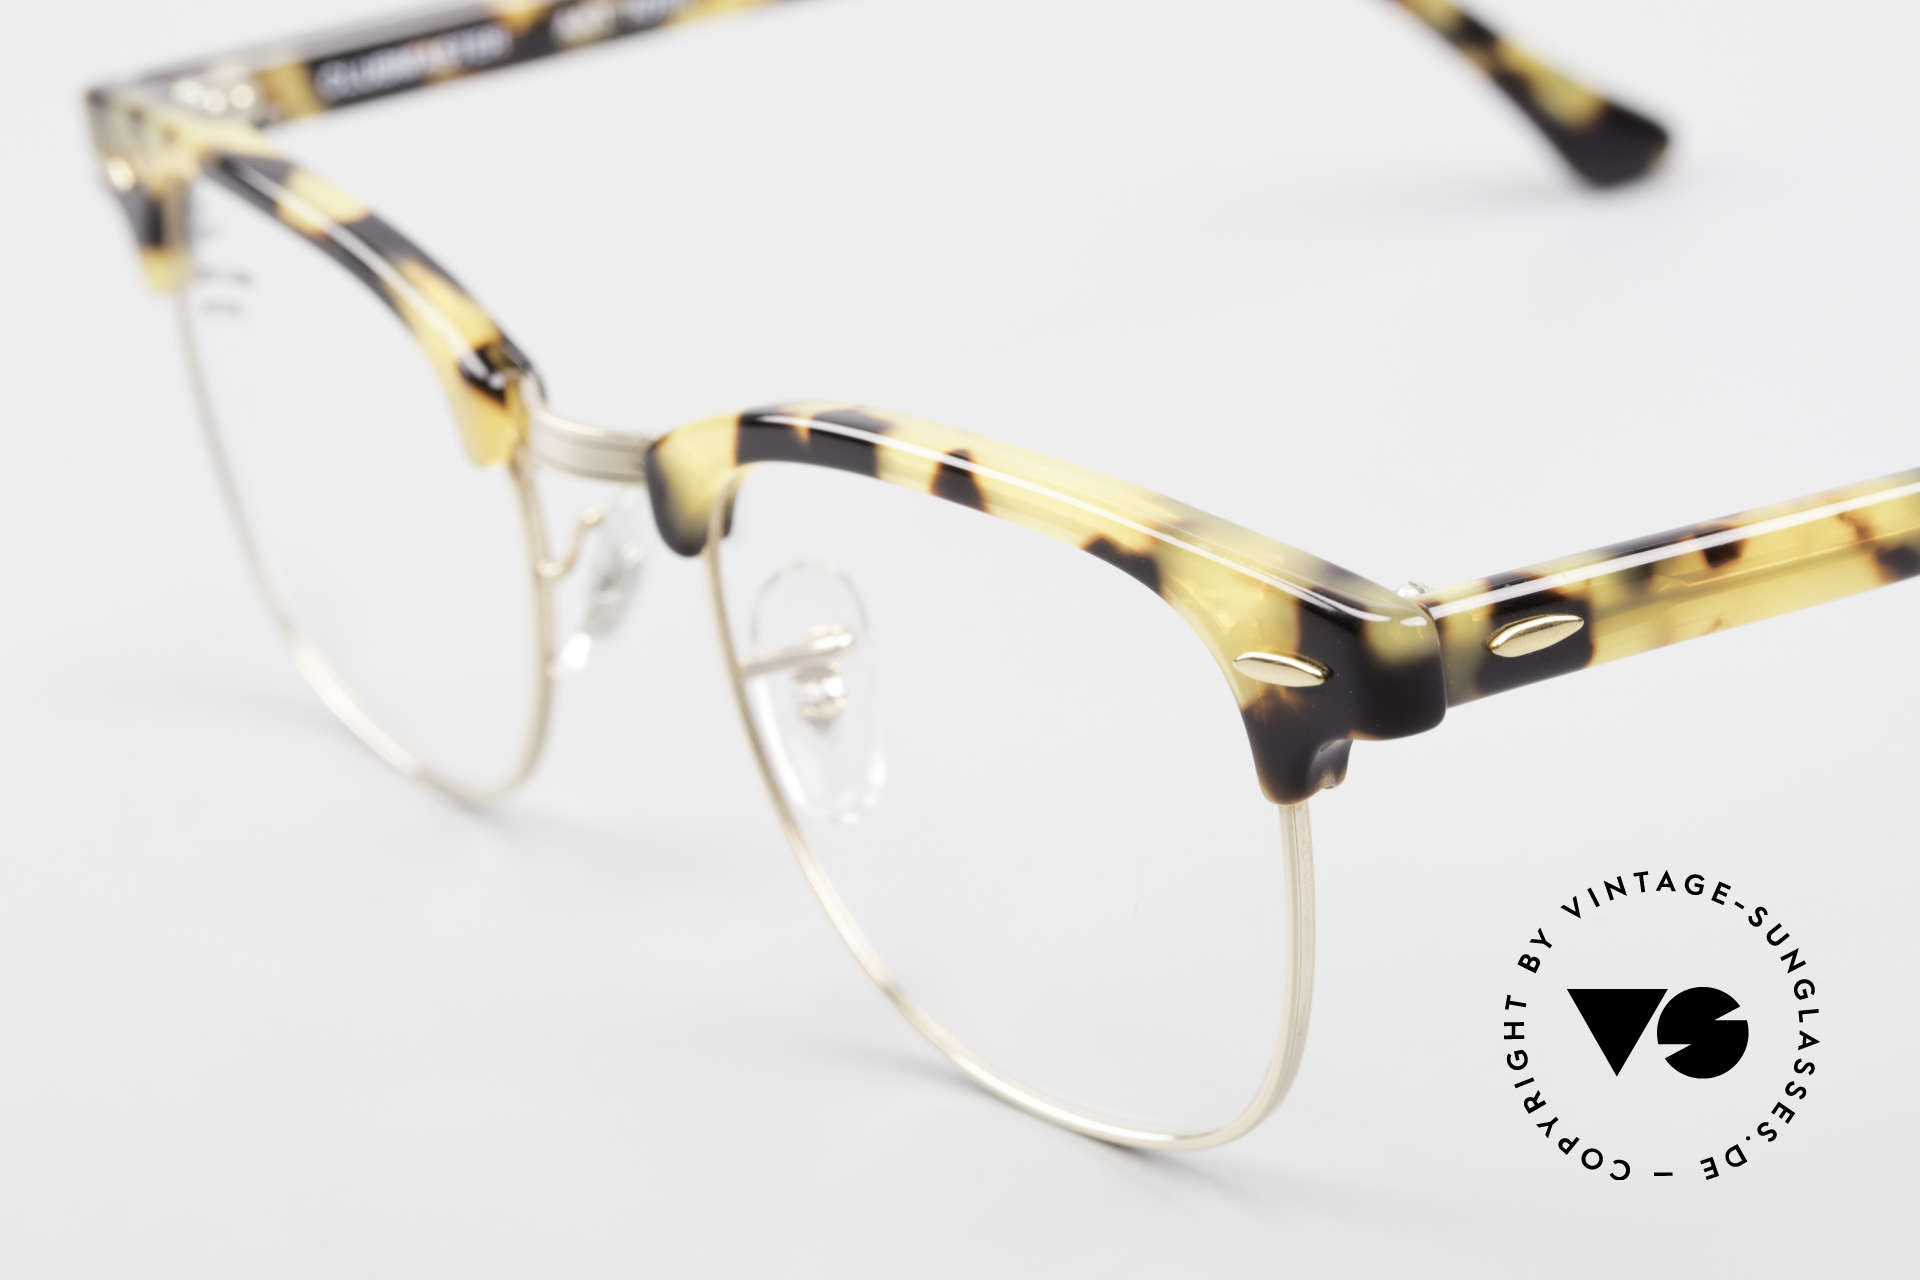 Ray Ban Clubmaster Limited Edition Frame USA B&L, never worn; like all our vintage Ray Ban frames, Made for Men and Women